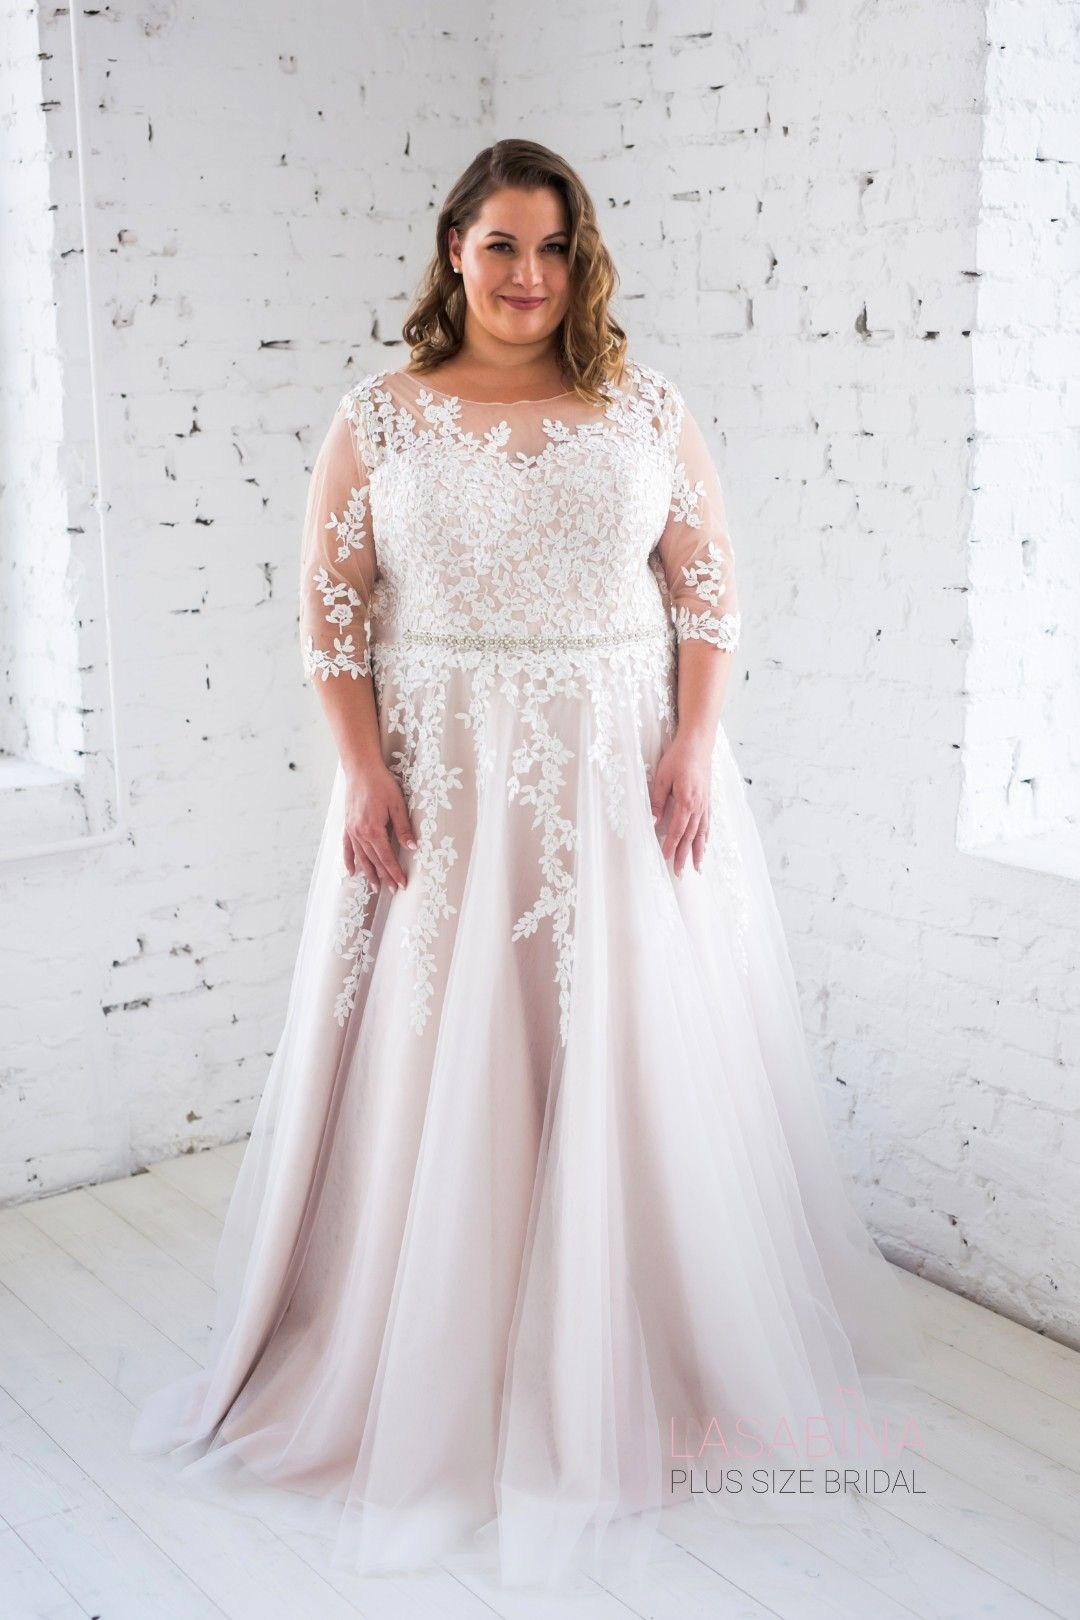 Adrienne I Plussizebridal Collection by LASABINA: Prinzessin